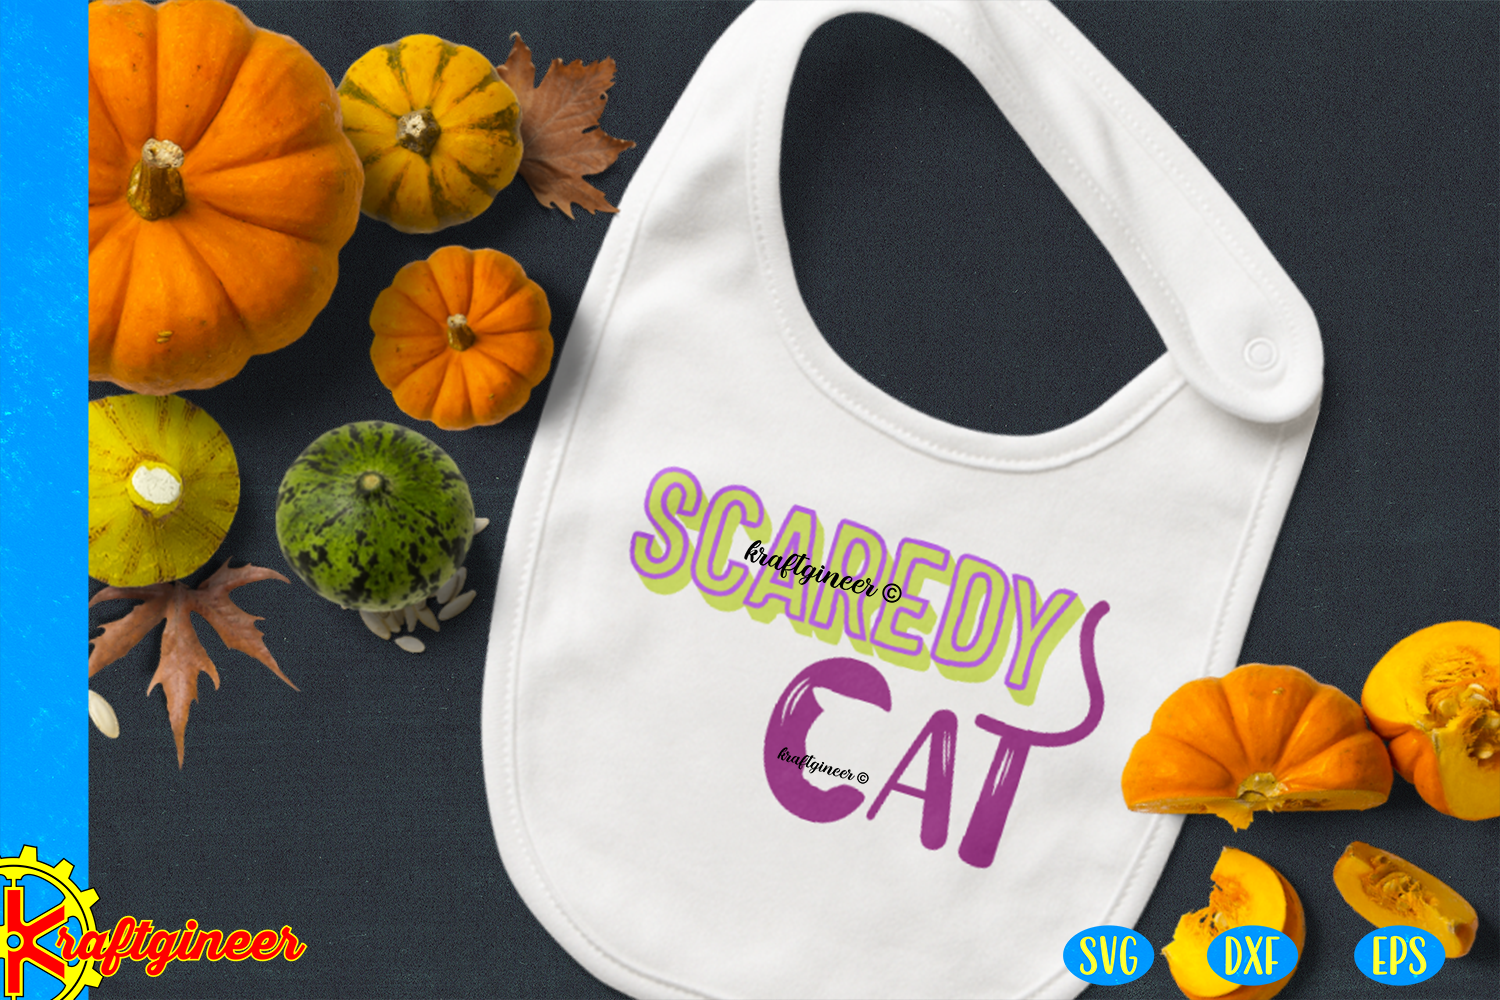 Halloween SVG, Scaredy Cat CUT FILE, DXF, EPS example image 3